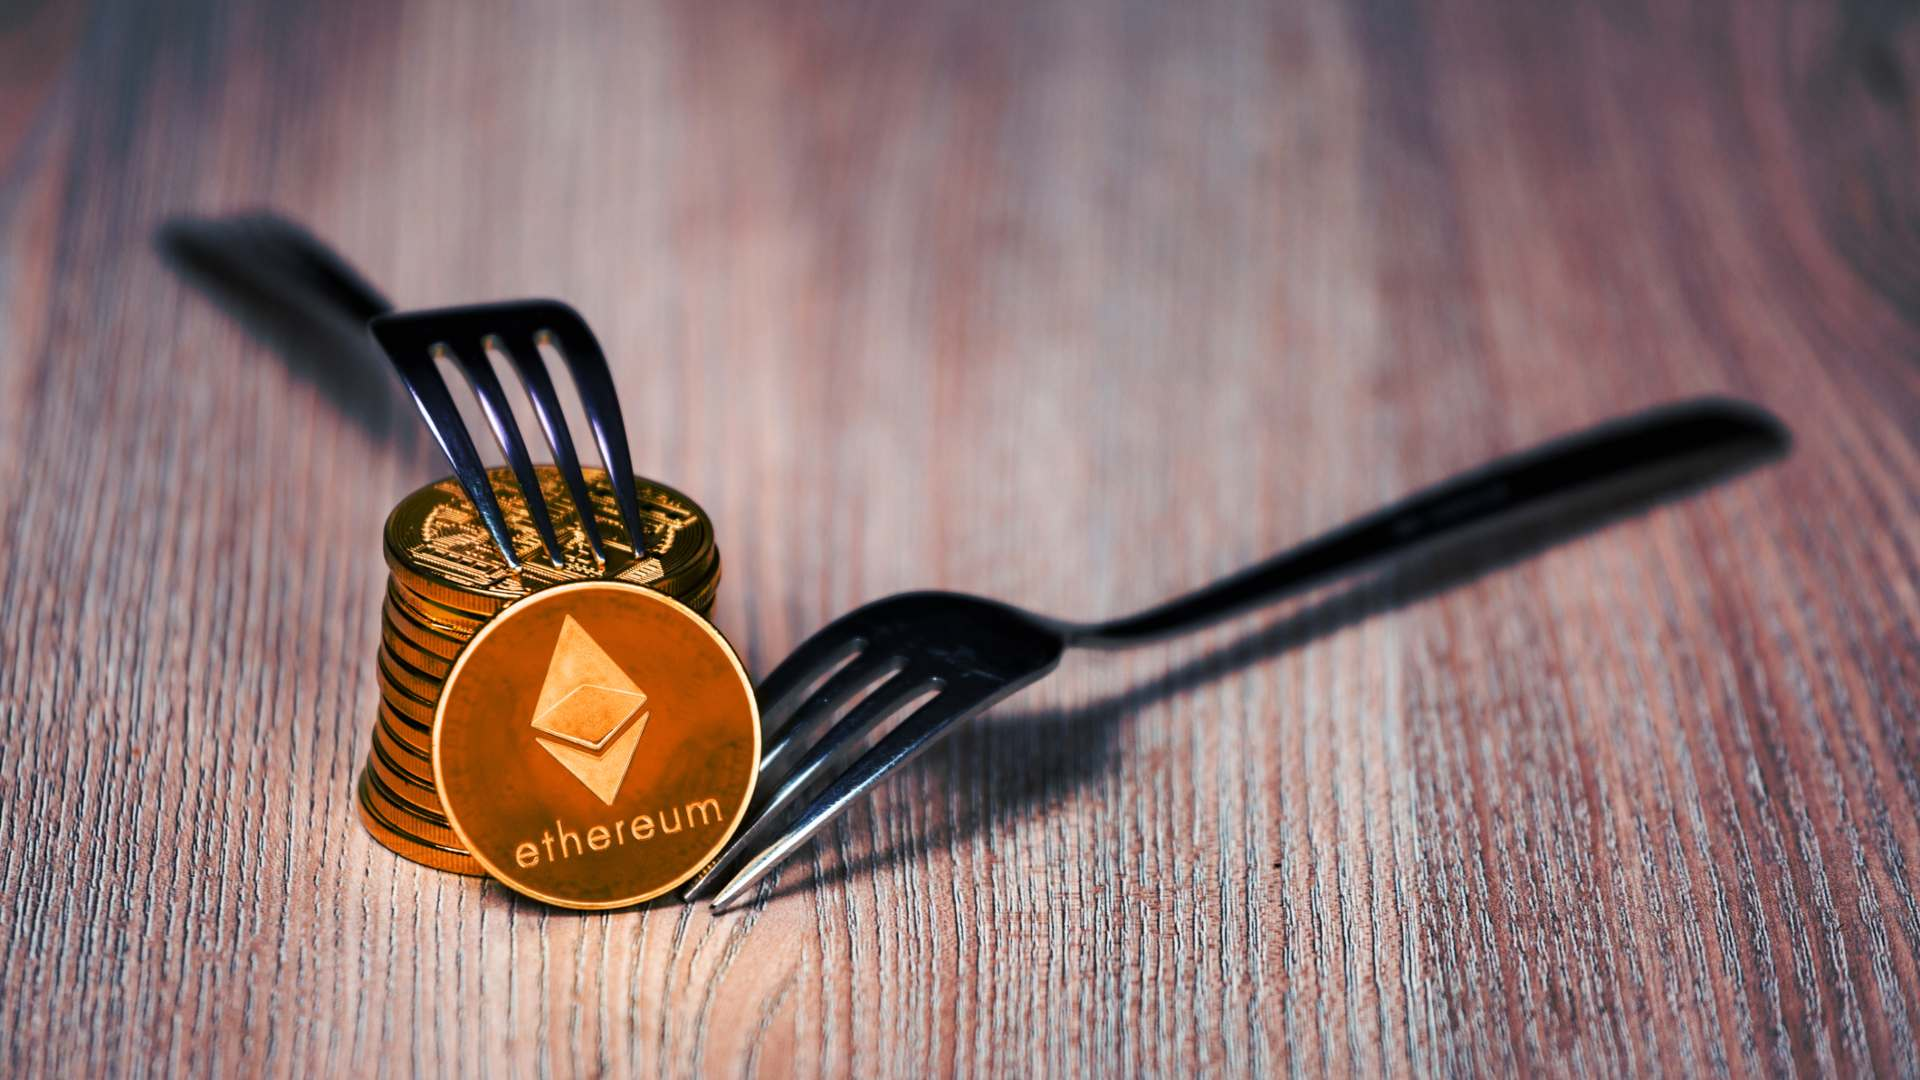 Ethereum fork Istanbul